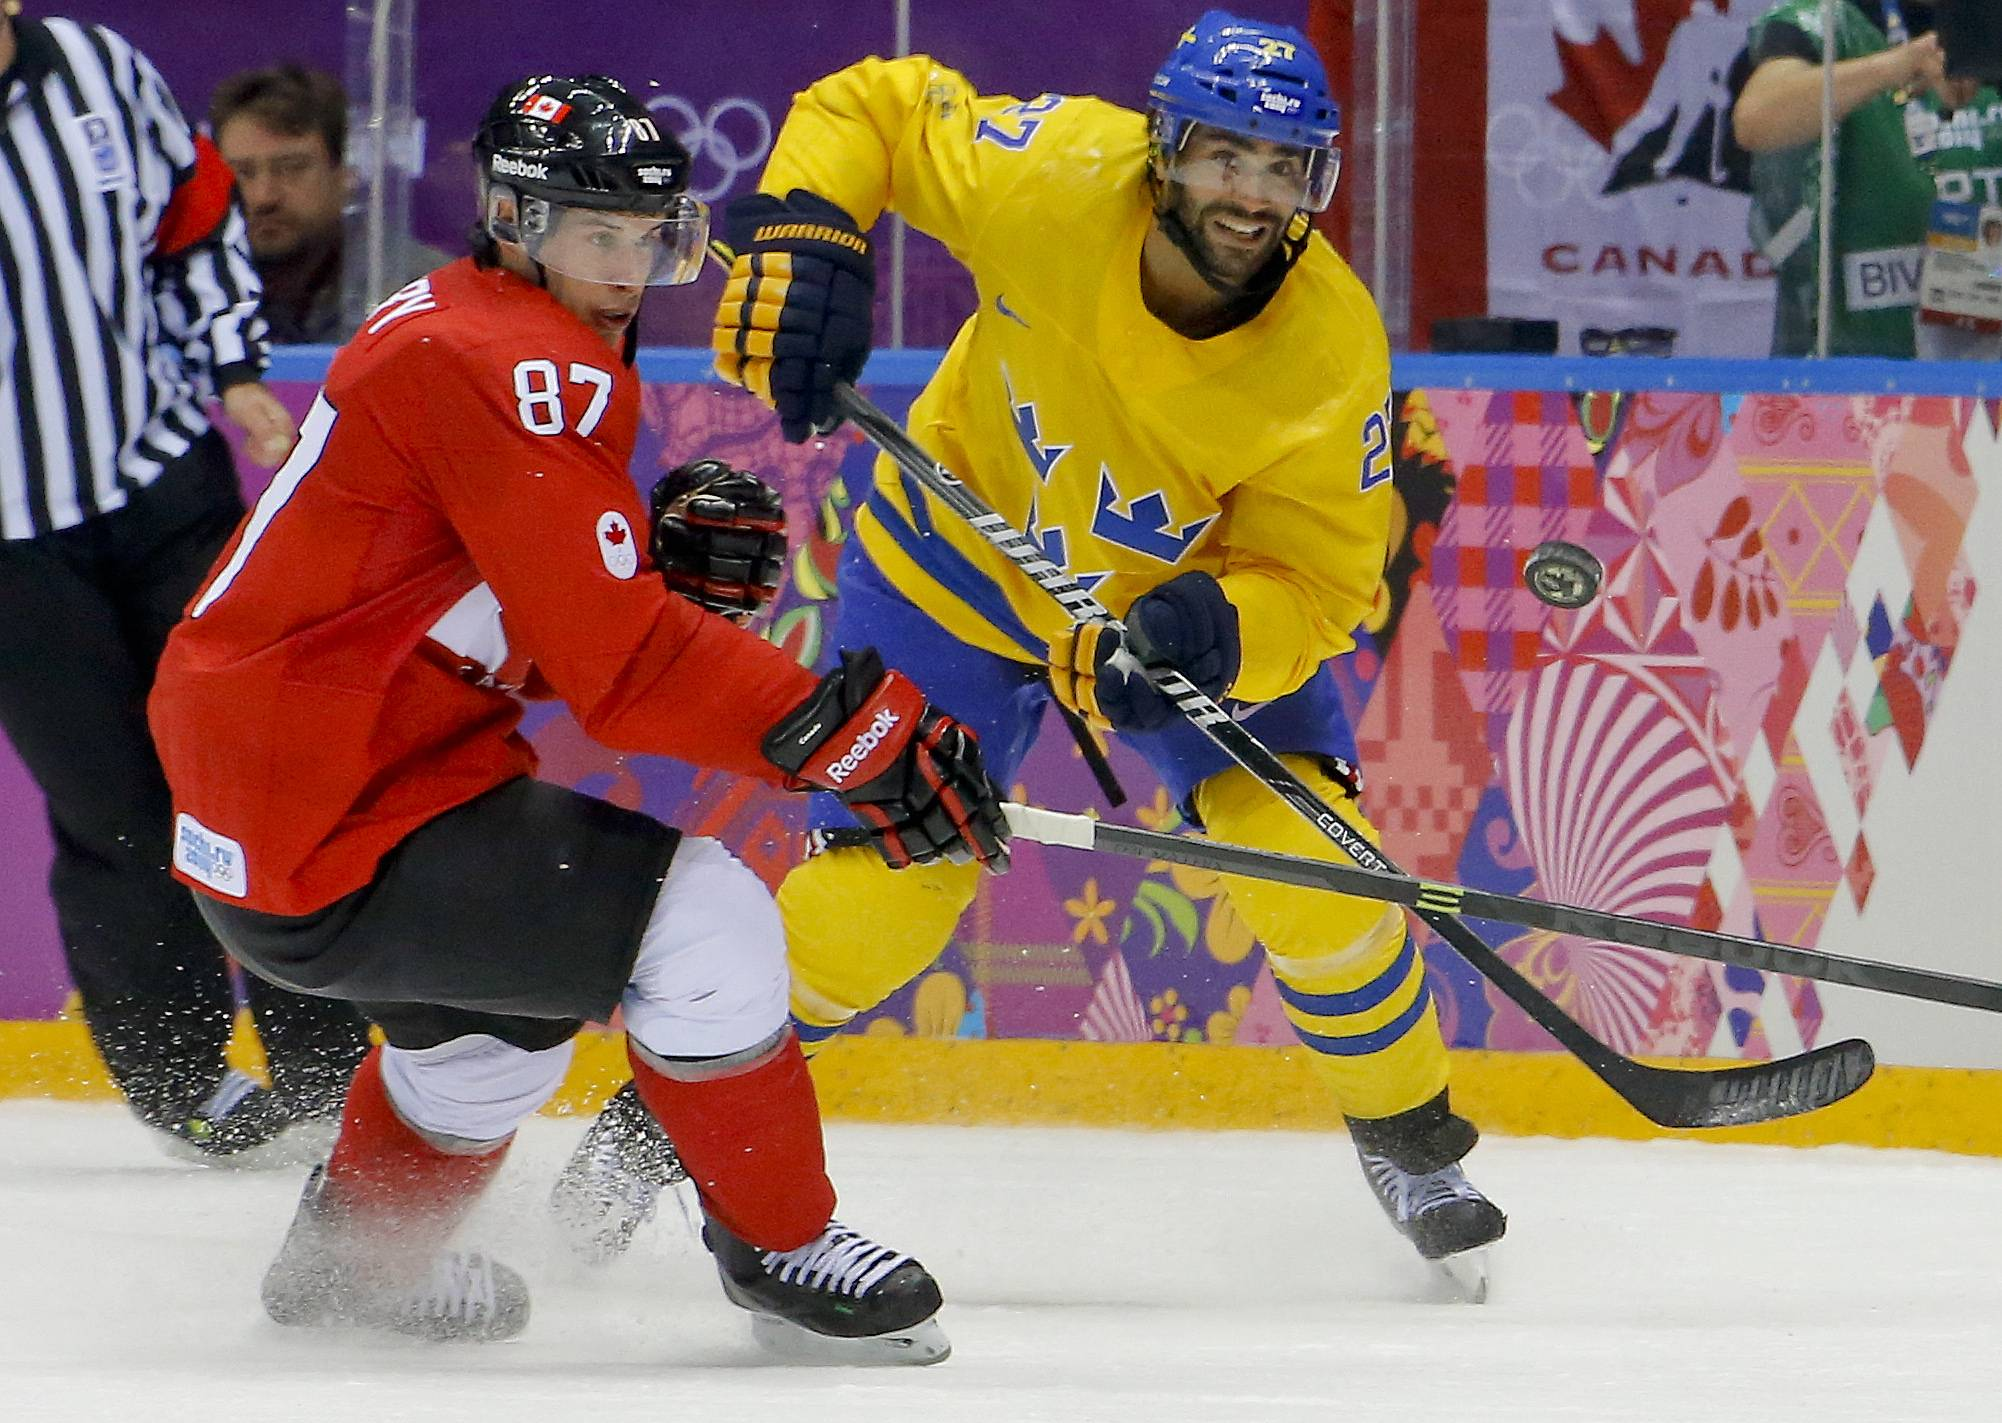 Canada forward Sidney Crosby, left, controls the puck against Sweden defenseman Johnny Oduya during the second period of the men's gold medal ice hockey game at the 2014 Winter Olympics, Sunday, Feb. 23, 2014, in Sochi, Russia.